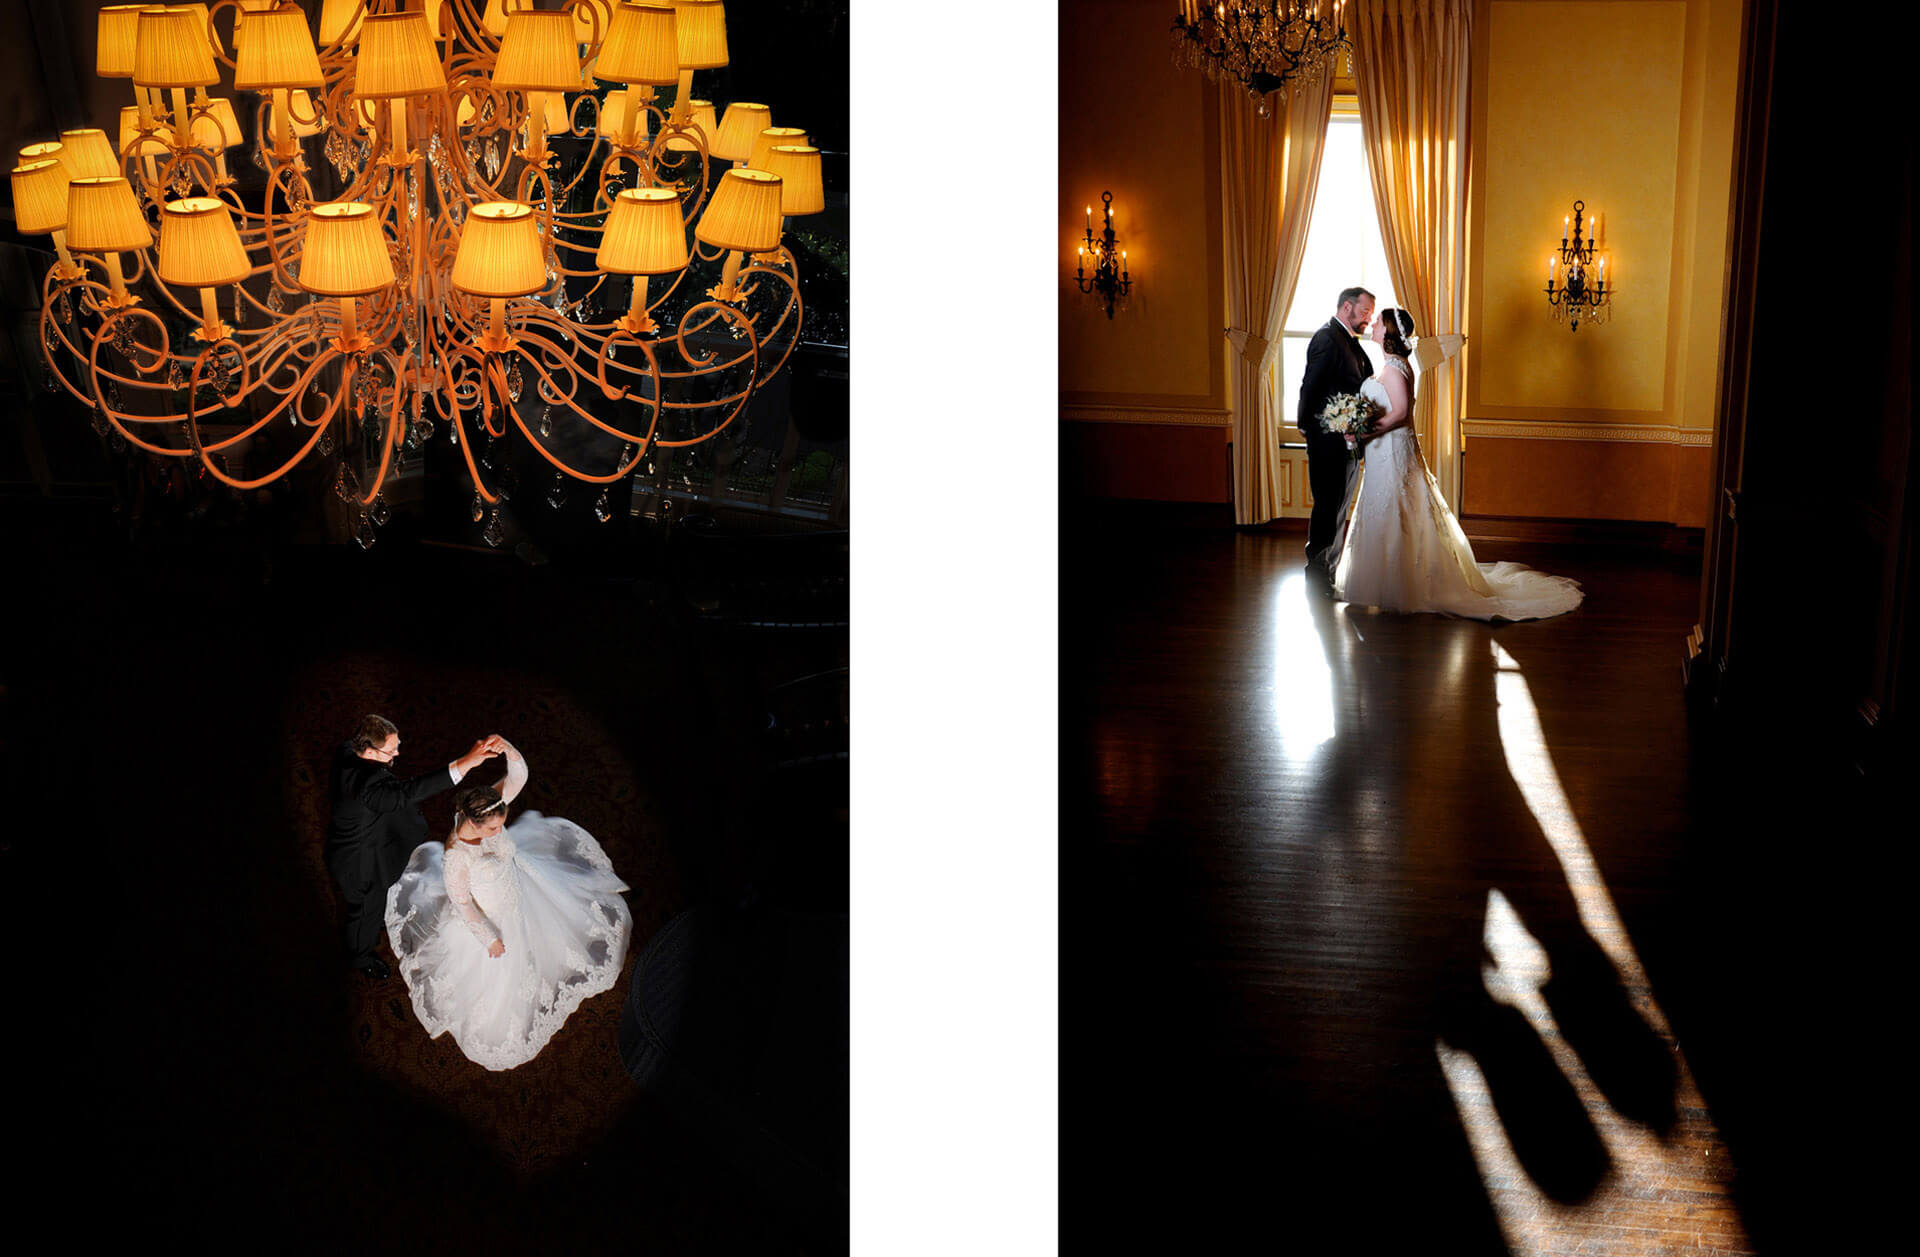 Two photos featuring Michigan wedding couples showcasing fine art and creativity for their wedding photos taken by a wedding photojournalist vote best Michigan wedding photographer 7 years in a row.